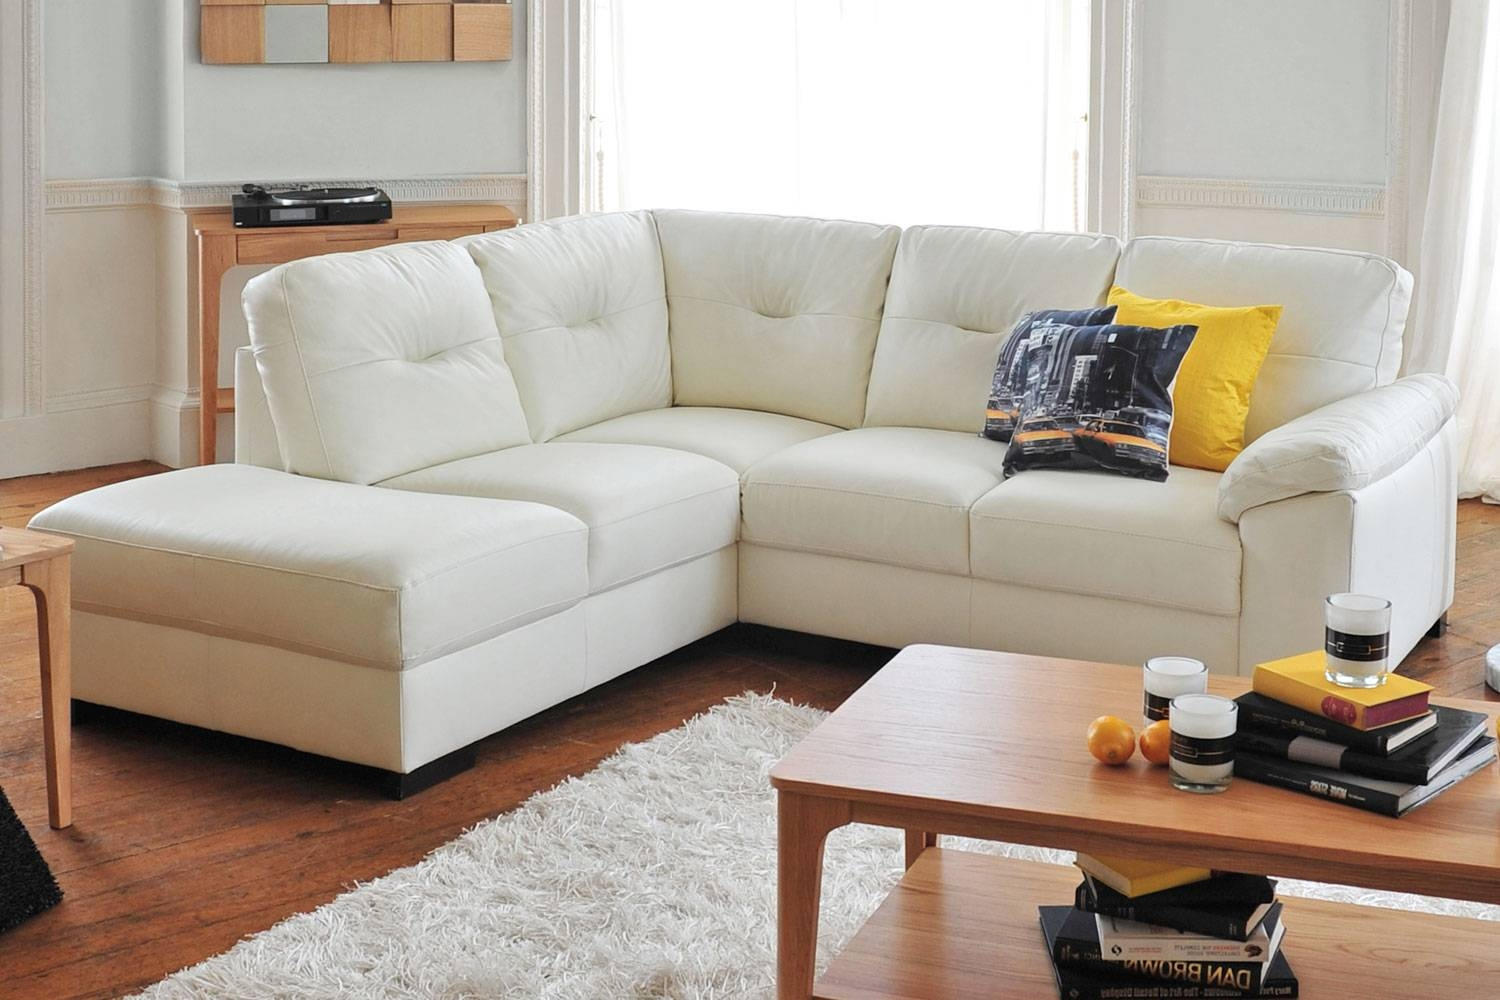 Pictures Of Best Sofa Set Designs 2016 With Corner Sofa And Swivel inside Corner Sofa and Swivel Chairs (Image 23 of 30)